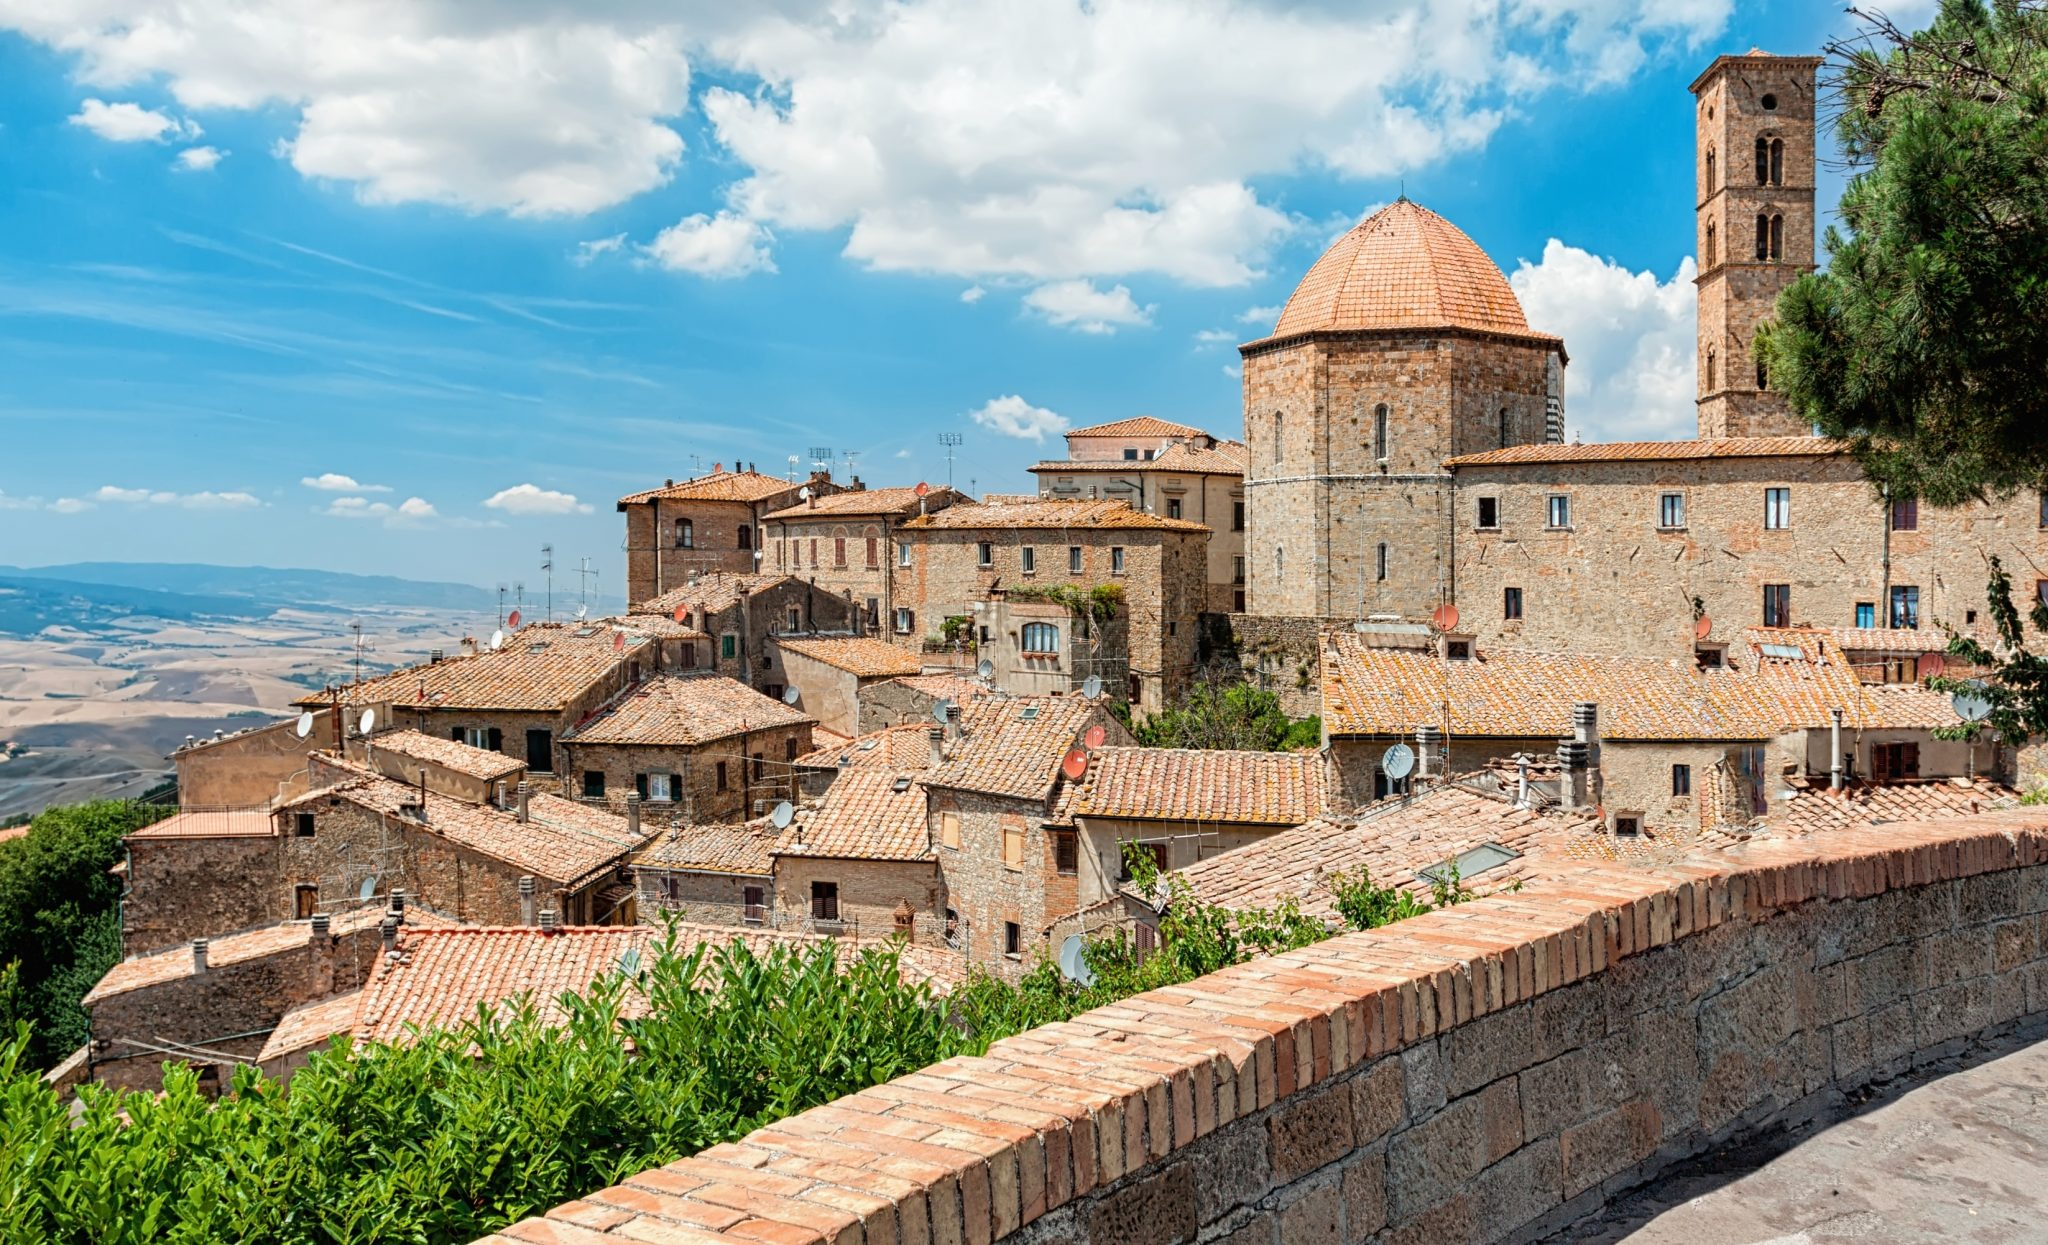 view of volterra italy from balcony overlooking town, one of the best things to do in volterra